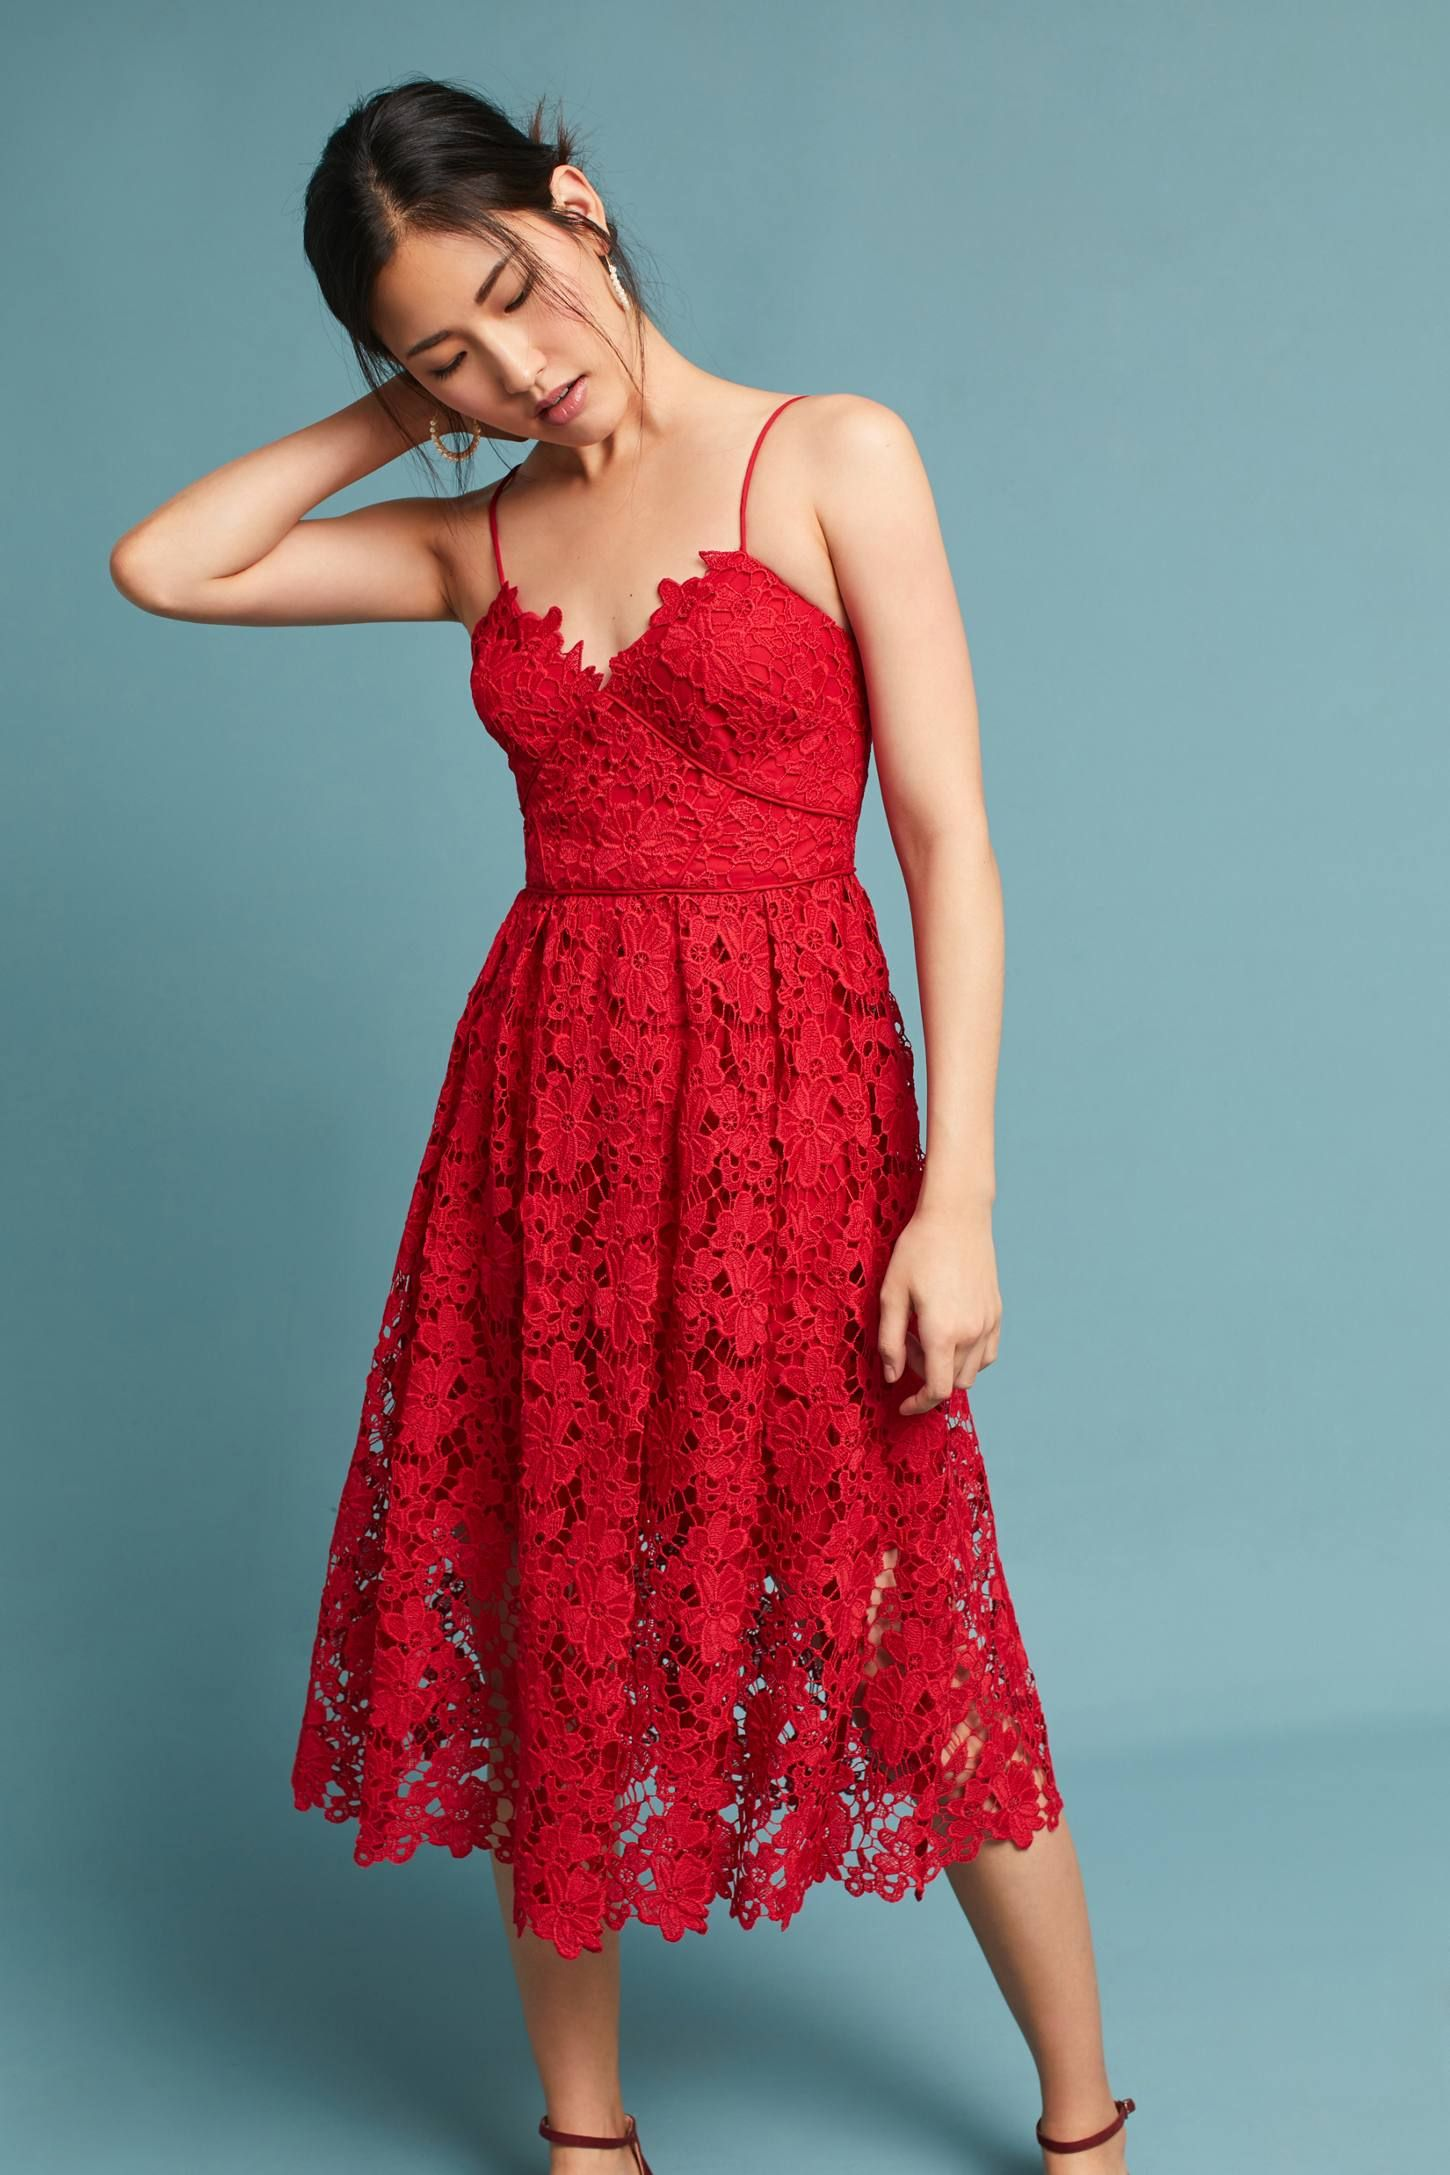 Scarlet Lace Dress | Pinterest | Scarlet, Lace dress and Anthropologie